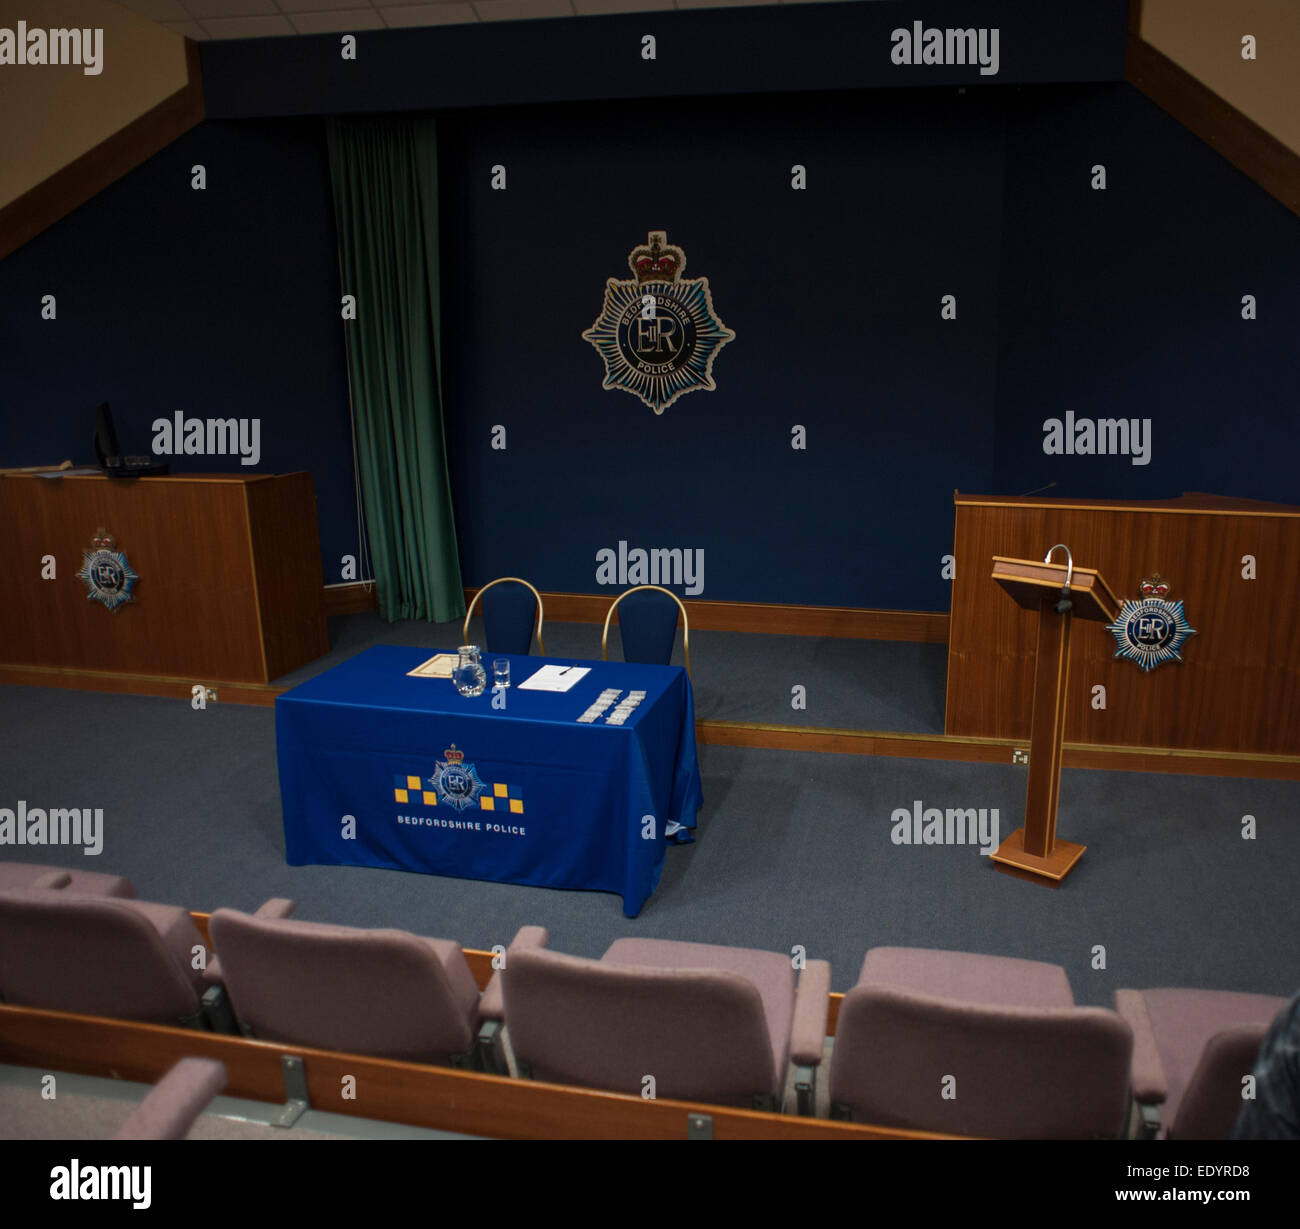 Bedfordshire police meeting conference room. credit: LEE RAMSDEN / ALAMY - Stock Image